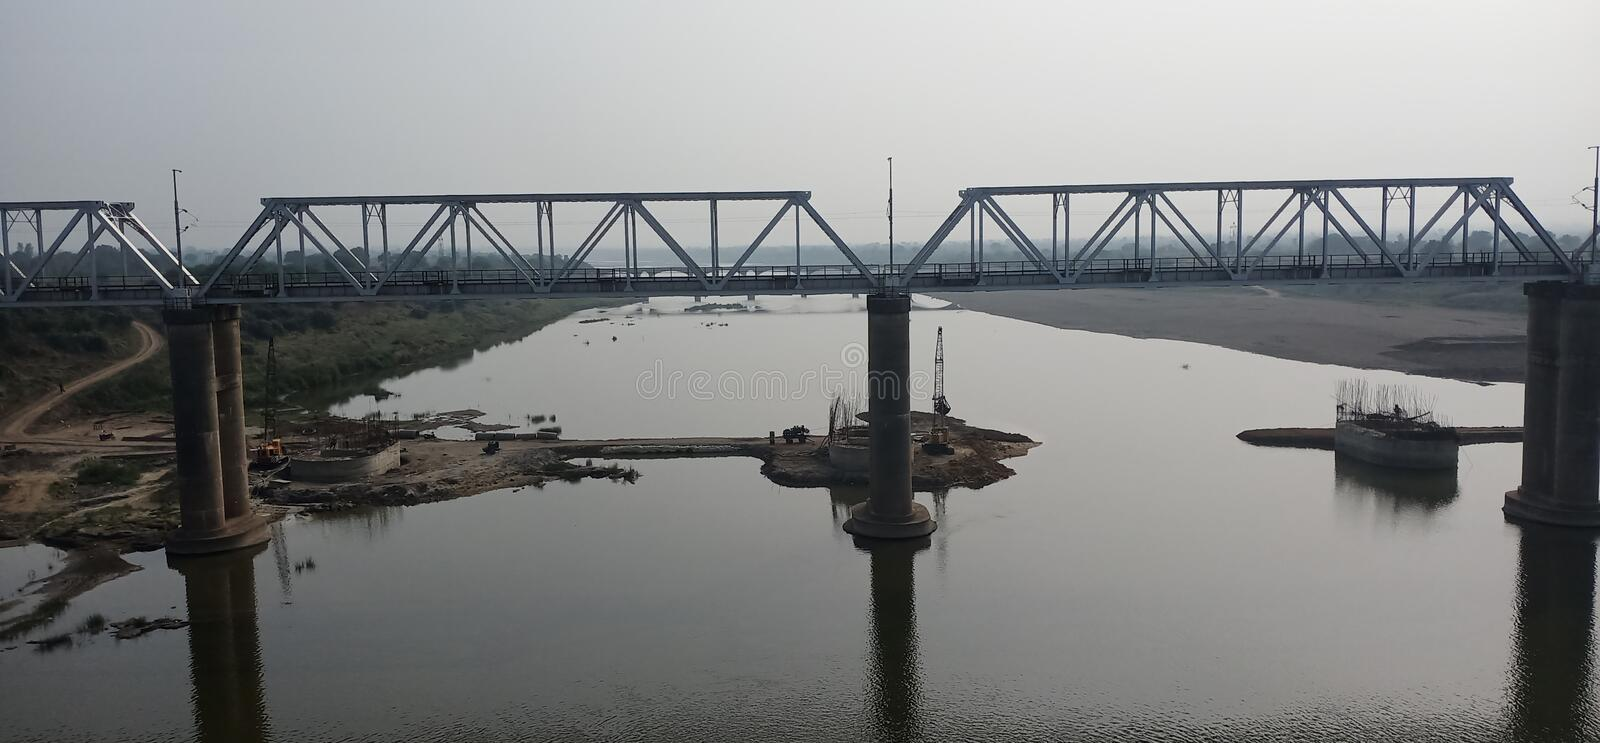 Over seeing the bridge and ever while journey in the train is some time memorable and eyes catching picture that gives us energy. Over seeing the bridge and stock images